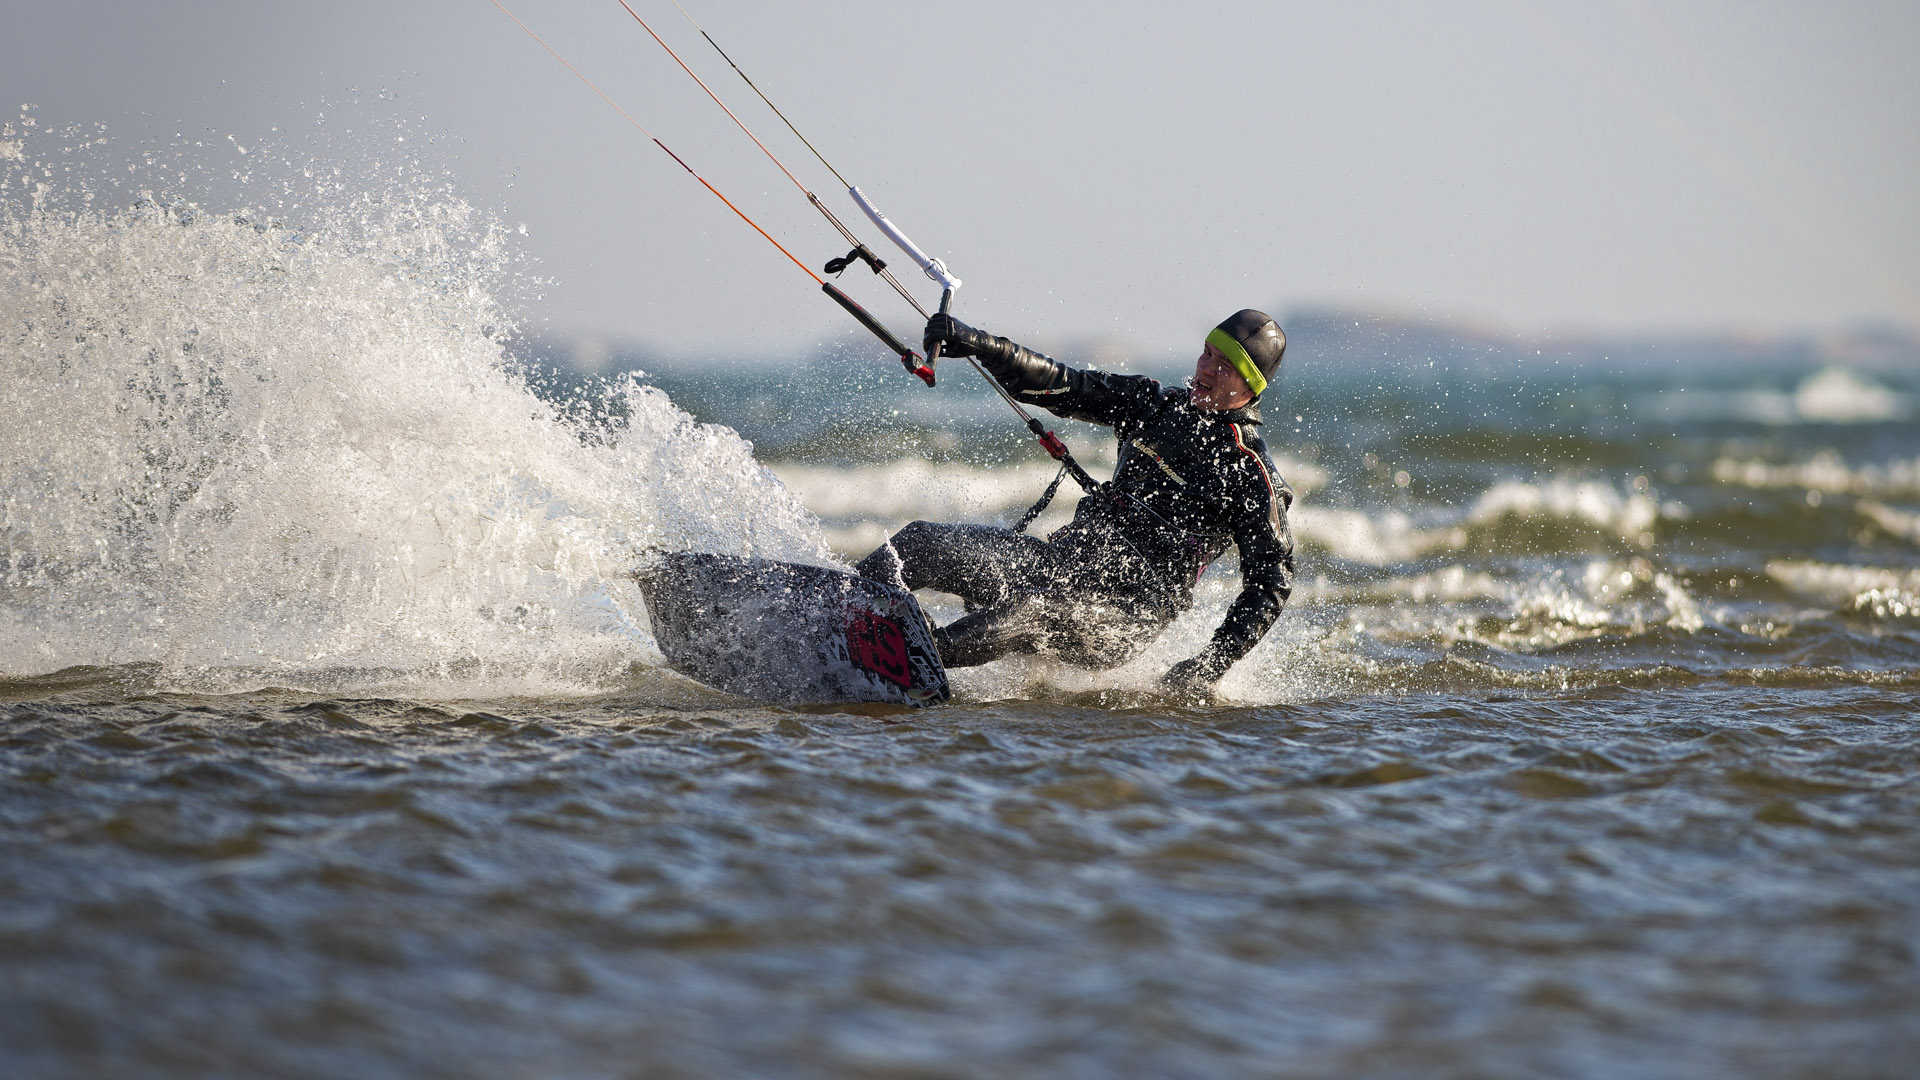 The last surf season never ended and the surfers have been able to surf on seawater or icesurfing through the whole winter. First signs of spring were seen on Sunday 8th of March when more than 20 enthusiastic kitesurfers were surfing at the Secret spot. Thanks to all cool women Rita de Kite and icemen […]